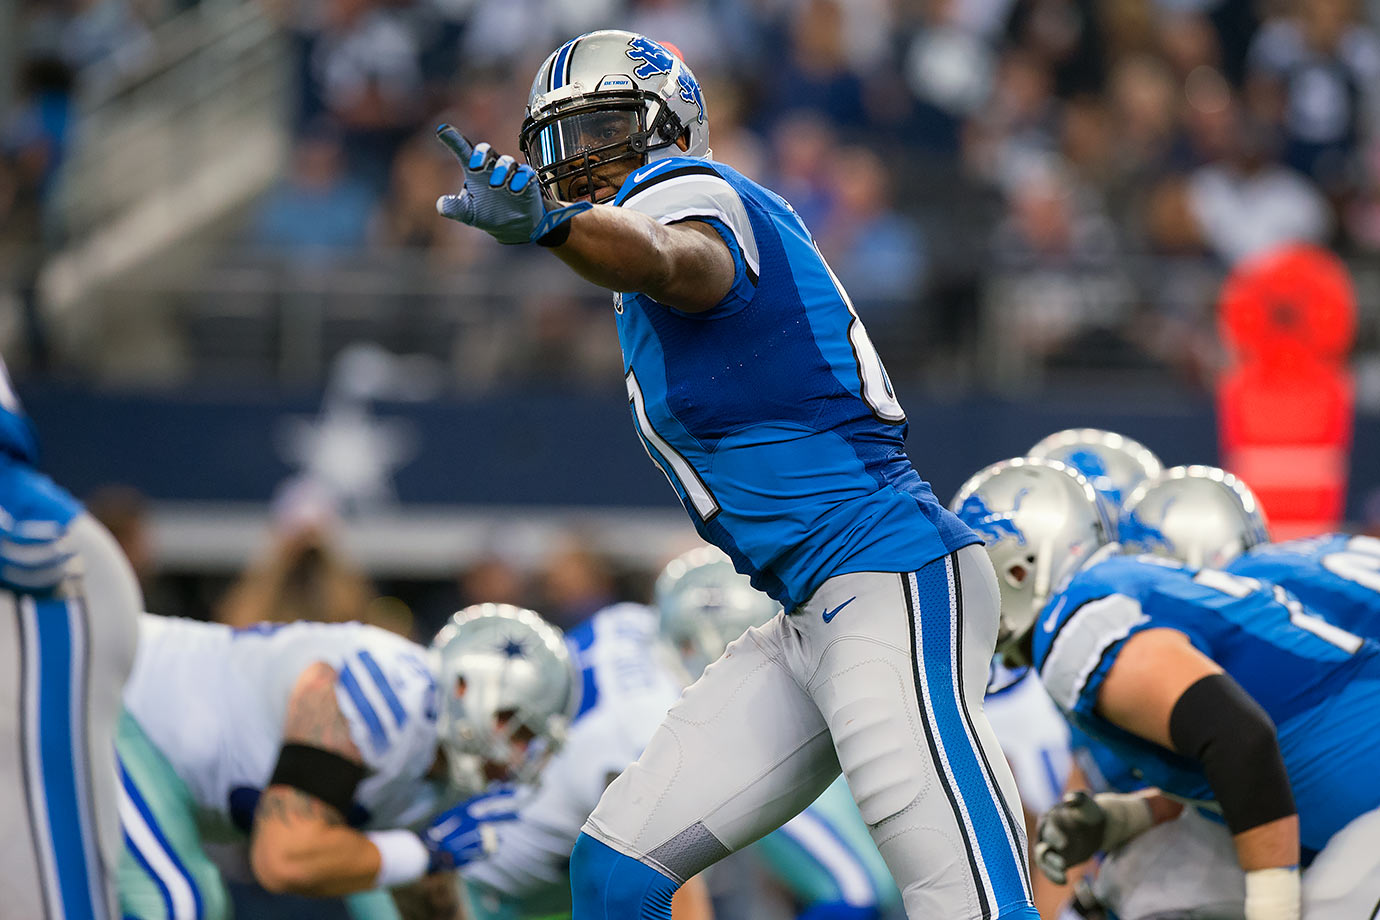 Jan. 4, 2015 (NFC Wild Card Playoffs) — Detroit Lions vs. Dallas Cowboys